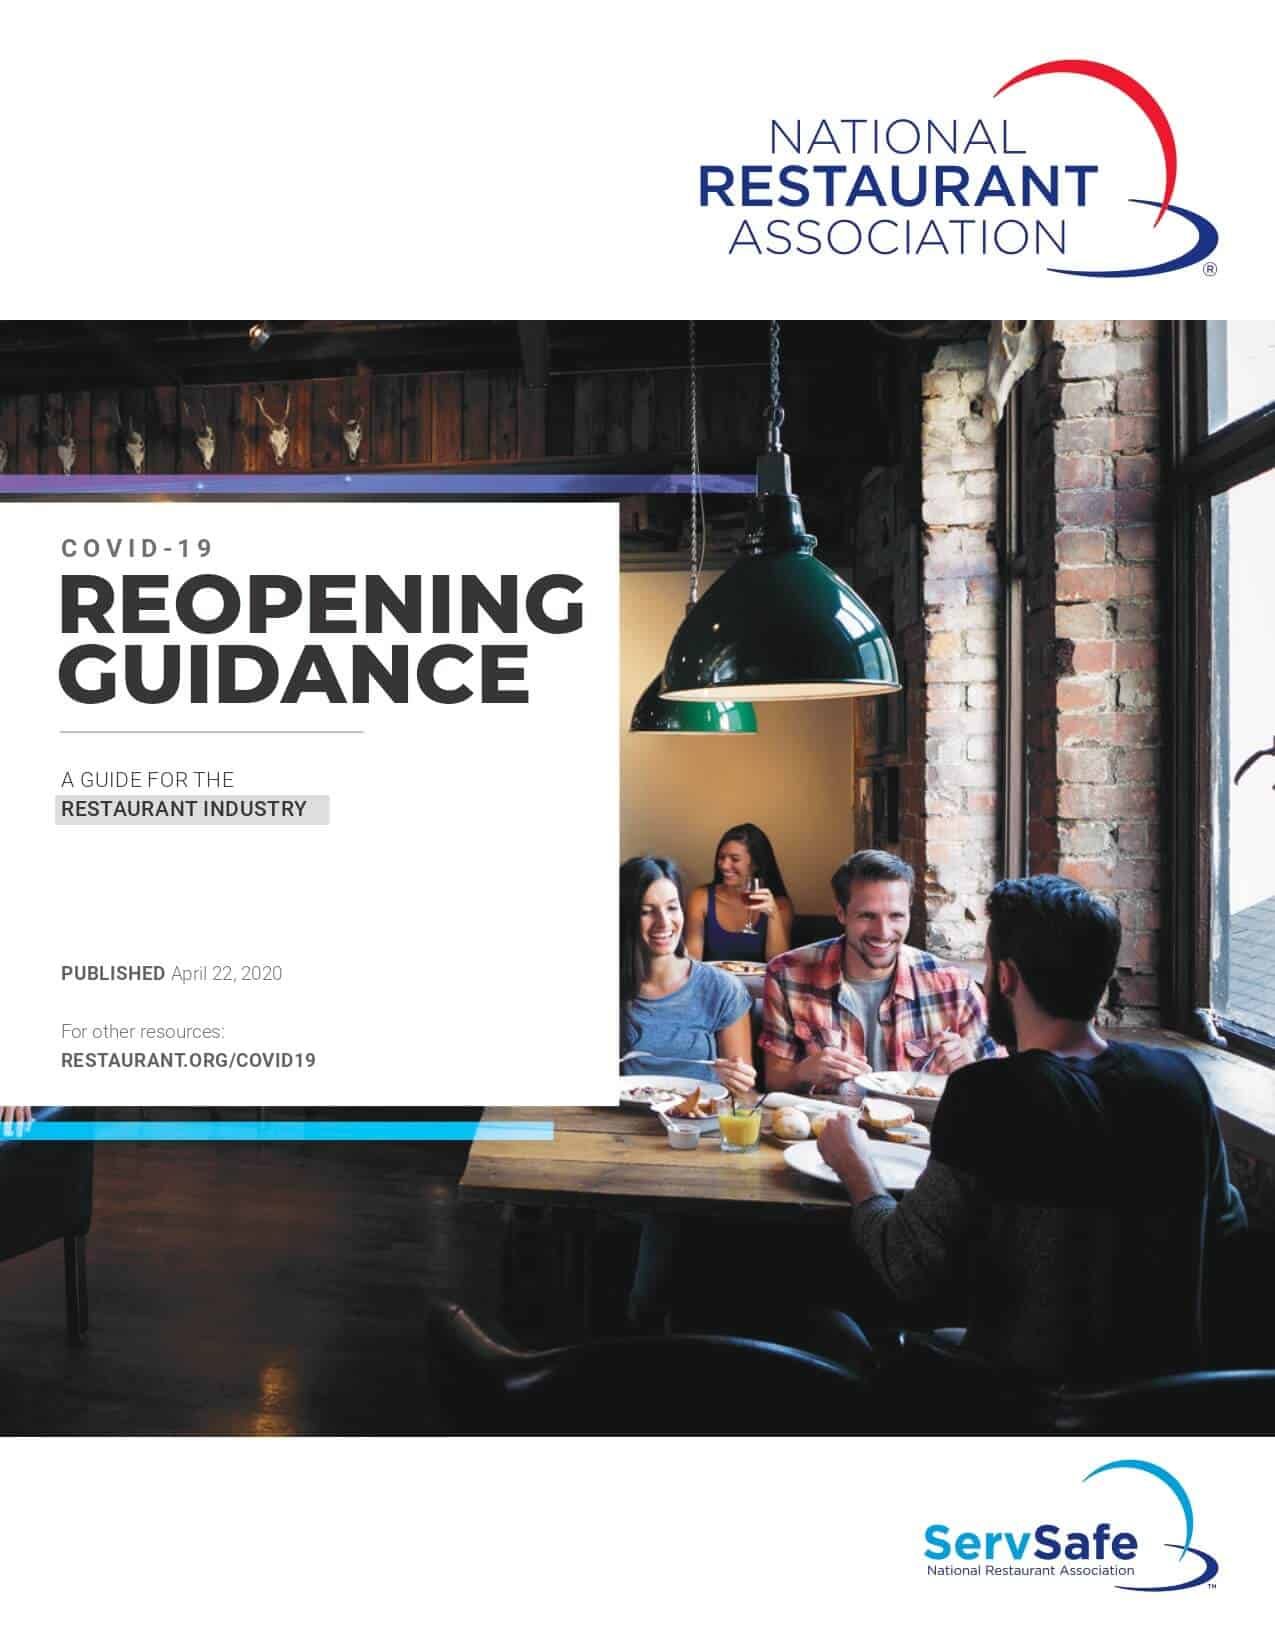 National-Restaurant-Association-COVID19-Reopening-Guidance (1)_page-0001